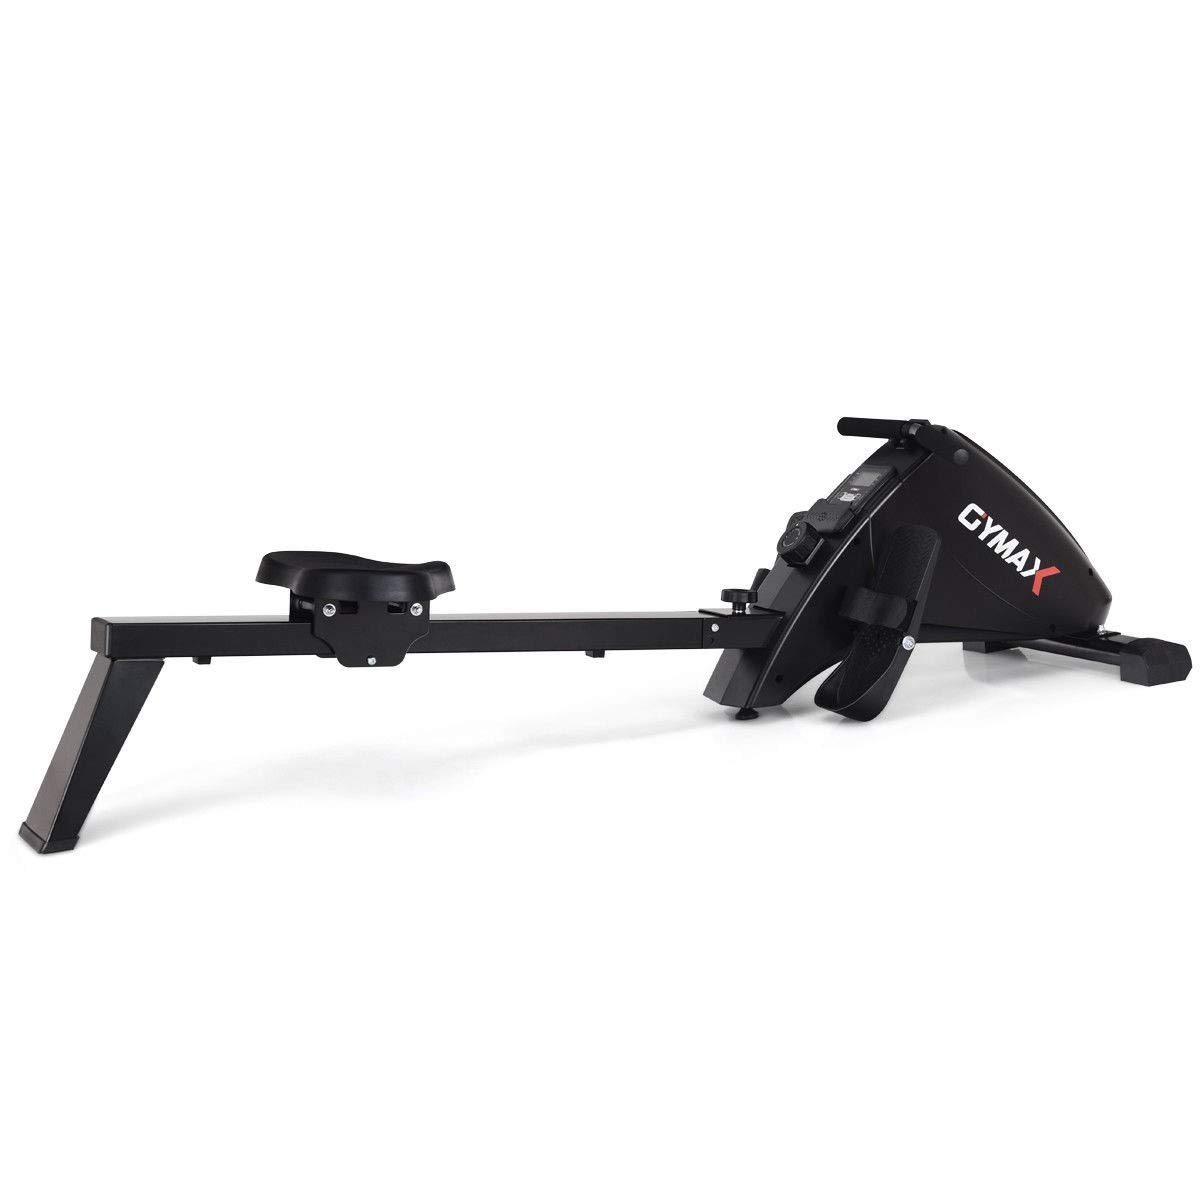 USA_BEST_SELLER Foldable Magnetic Rowing 10-Level Tension Resistance System Machine Fitness Cardio Workout